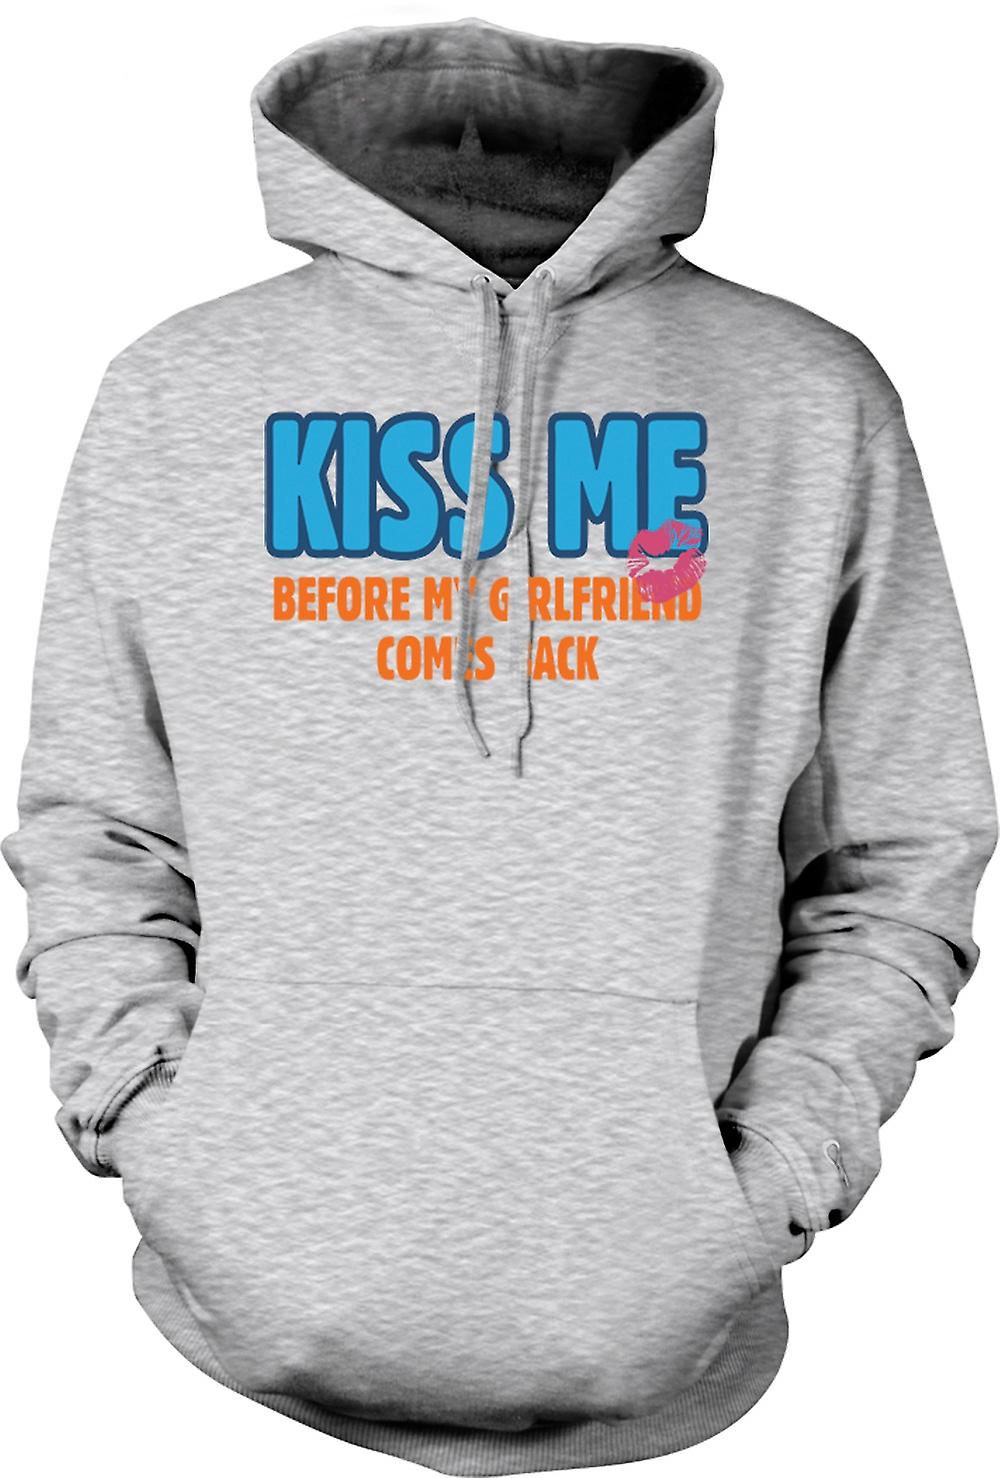 Mens Hoodie - Kiss Me Before My Girlfriend Comes Back - Funny Women